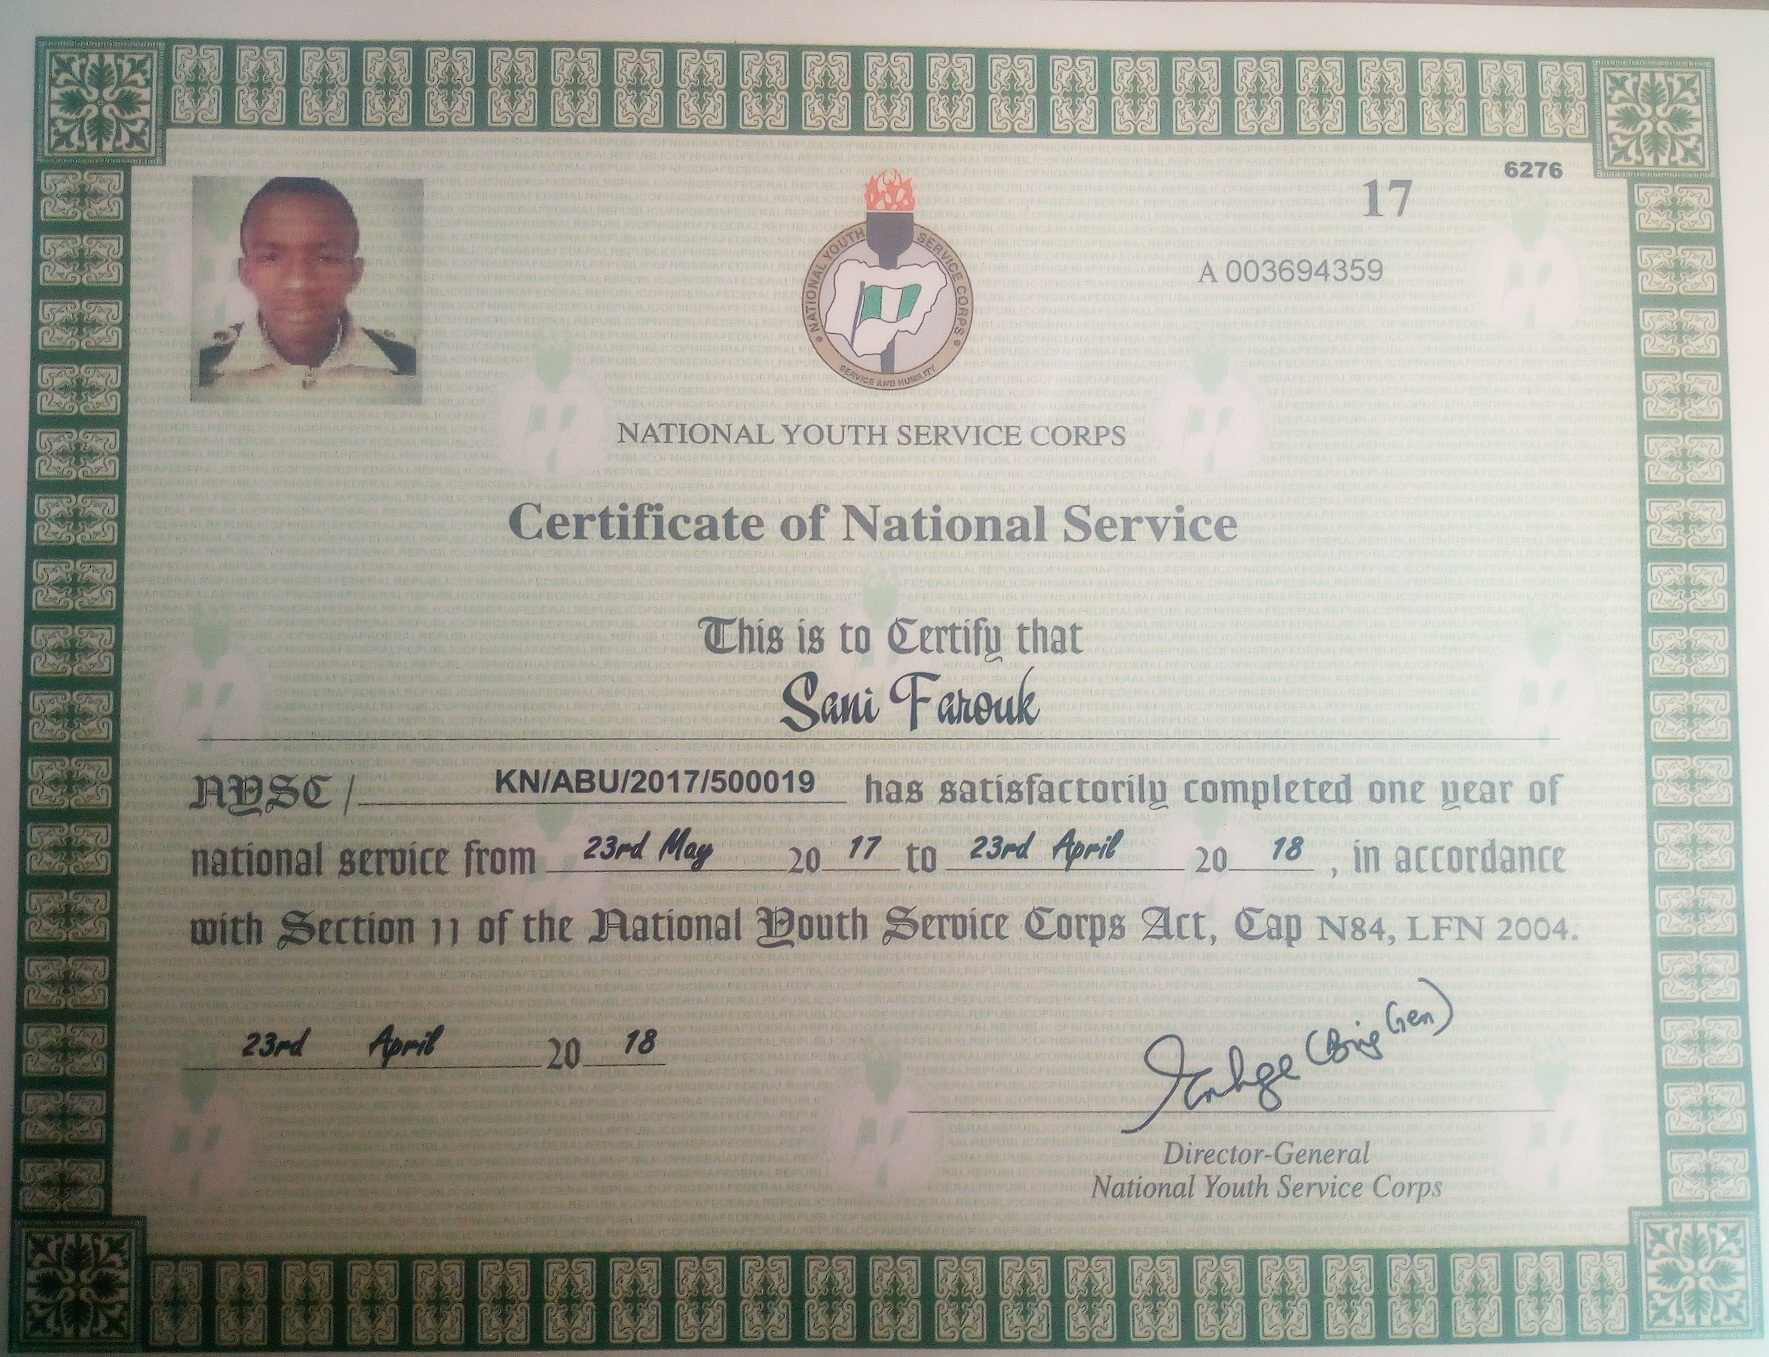 Online NYSC Certificate Verification Procedures